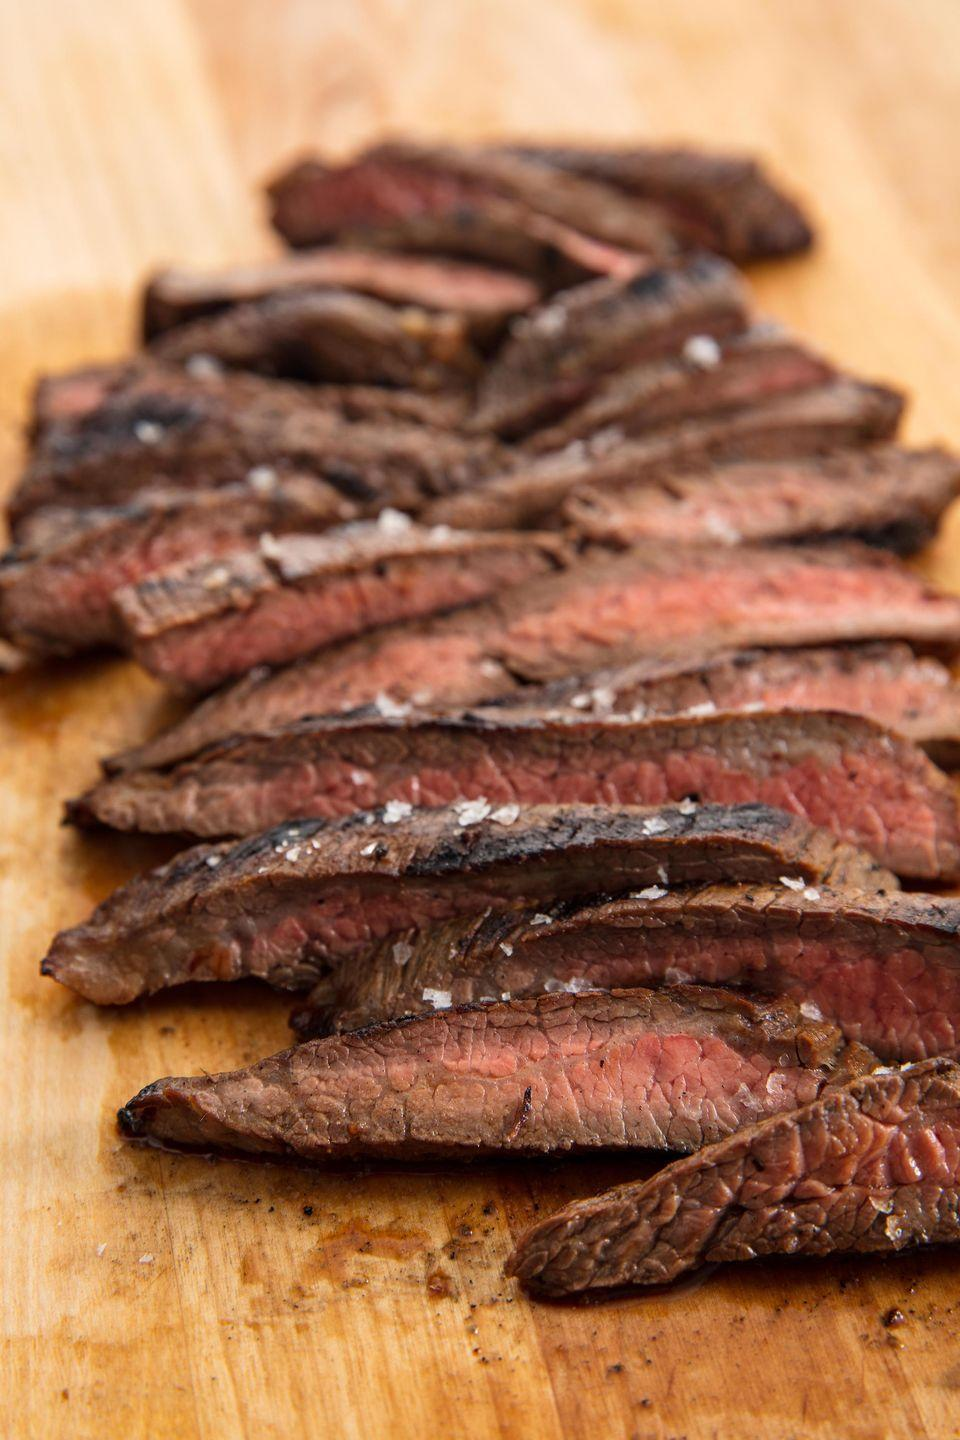 "<p>The marinade is 100% optional, but we promise you'll never regret it. All you need is 30 extra minutes.</p><p>Get the recipe from <a href=""https://www.delish.com/cooking/recipe-ideas/recipes/a58238/easy-flank-steak-recipe-oven/"" rel=""nofollow noopener"" target=""_blank"" data-ylk=""slk:Delish"" class=""link rapid-noclick-resp"">Delish</a>. </p>"